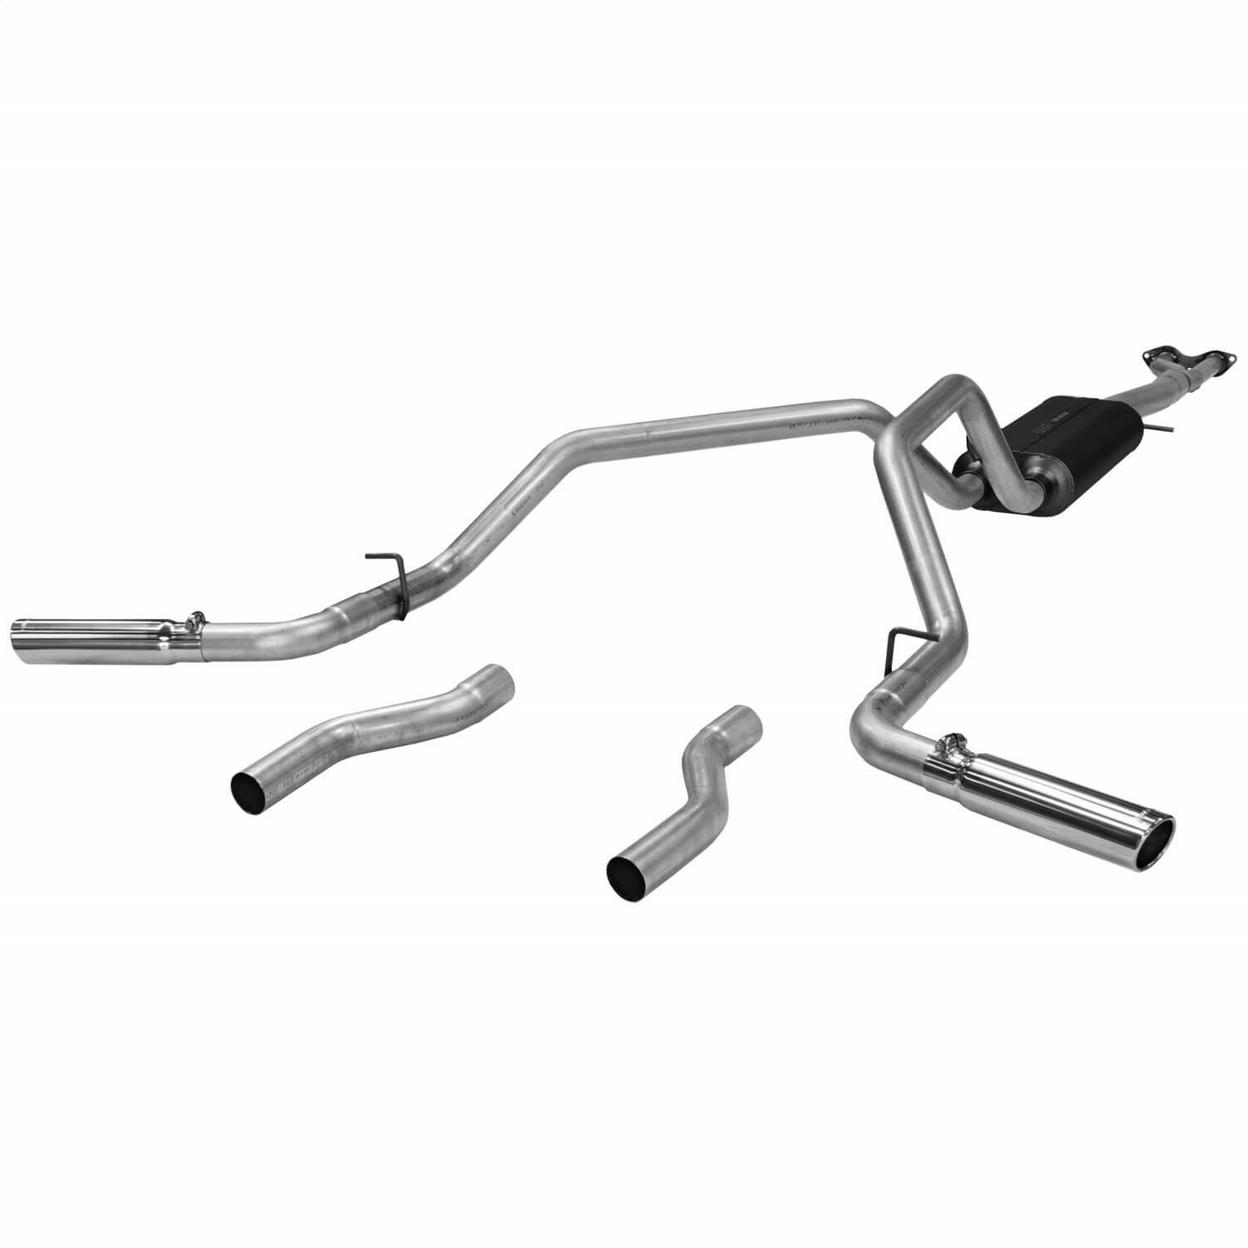 Flowmaster Exhaust System Kit Fits Gmc